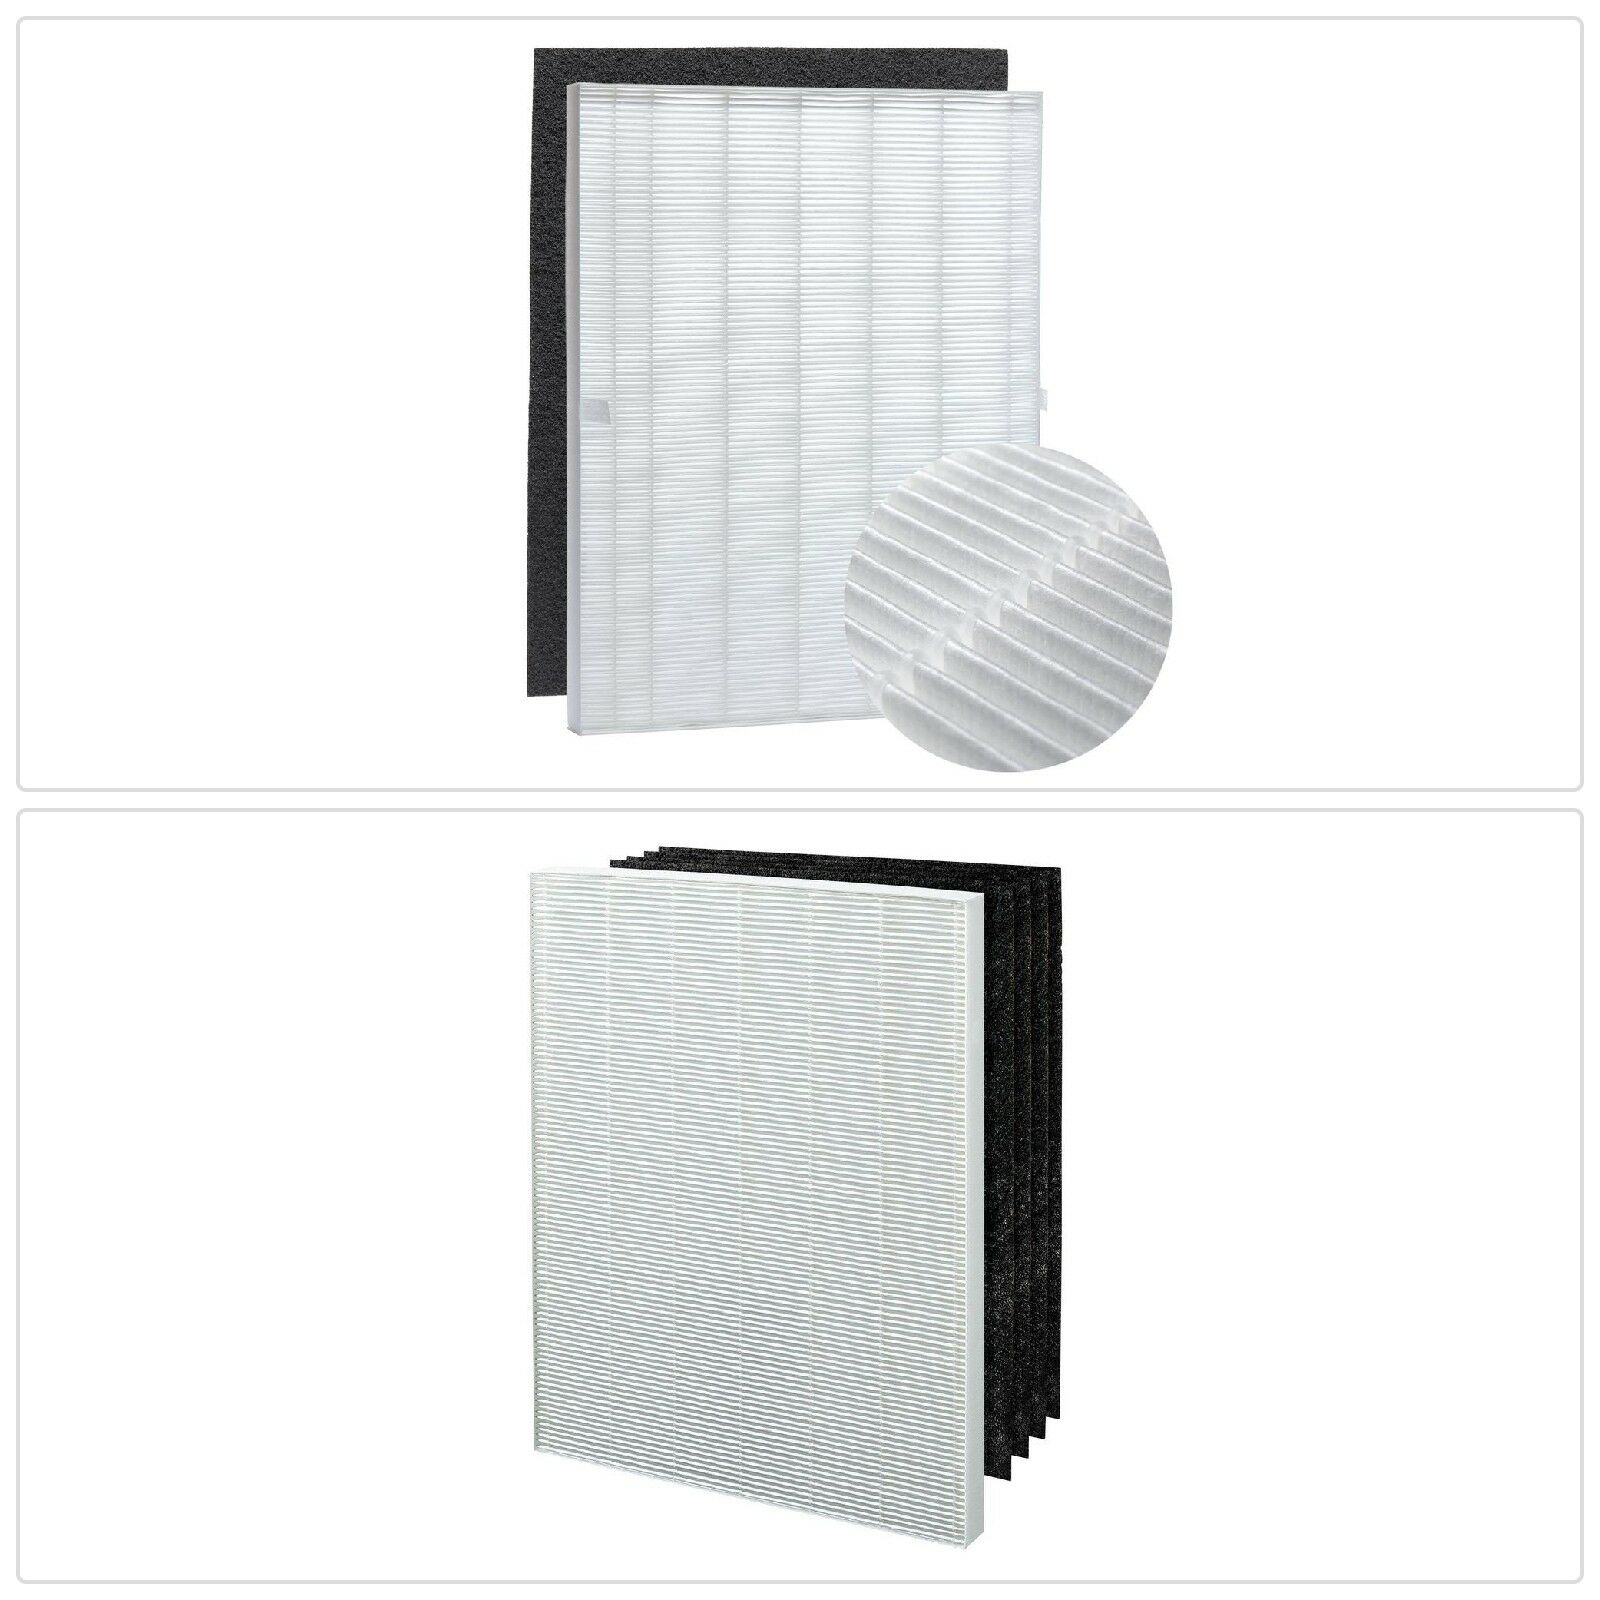 True HEPA 4 Filter Activated Carbon Replacement Filter A Fits Winix Air Cleaner